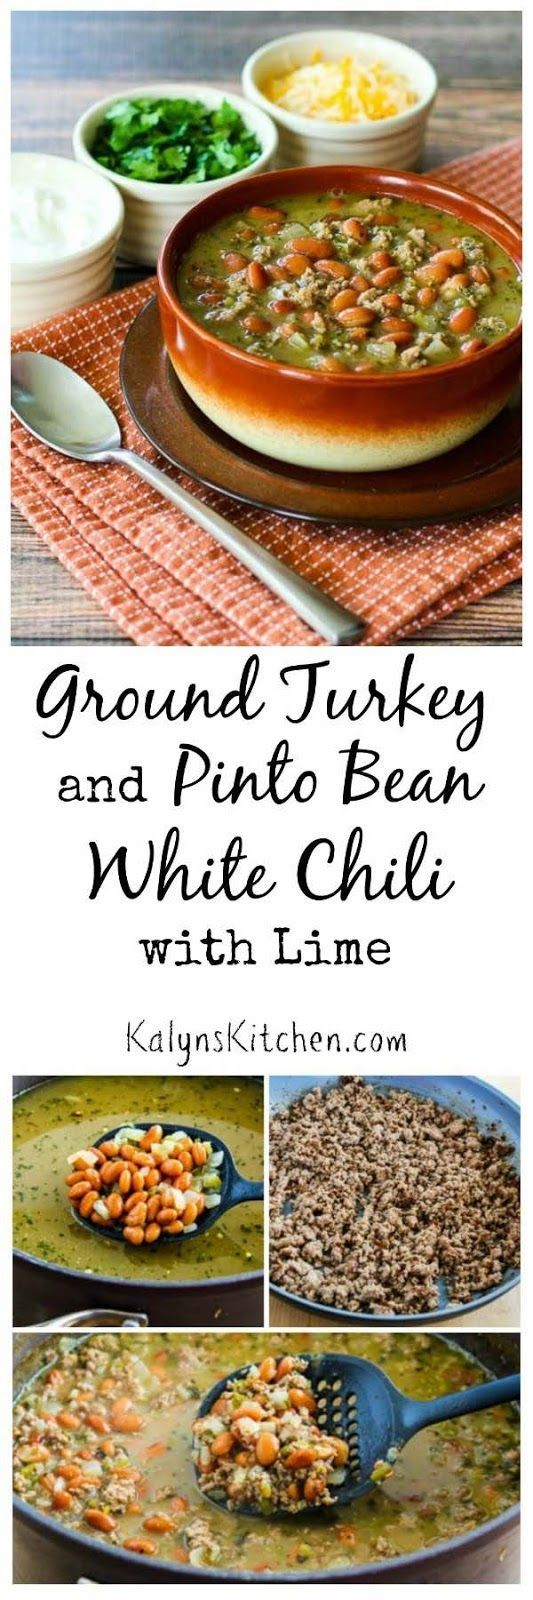 Make this amazing Turkey and Pinto Bean White Chili with Lime with ground…